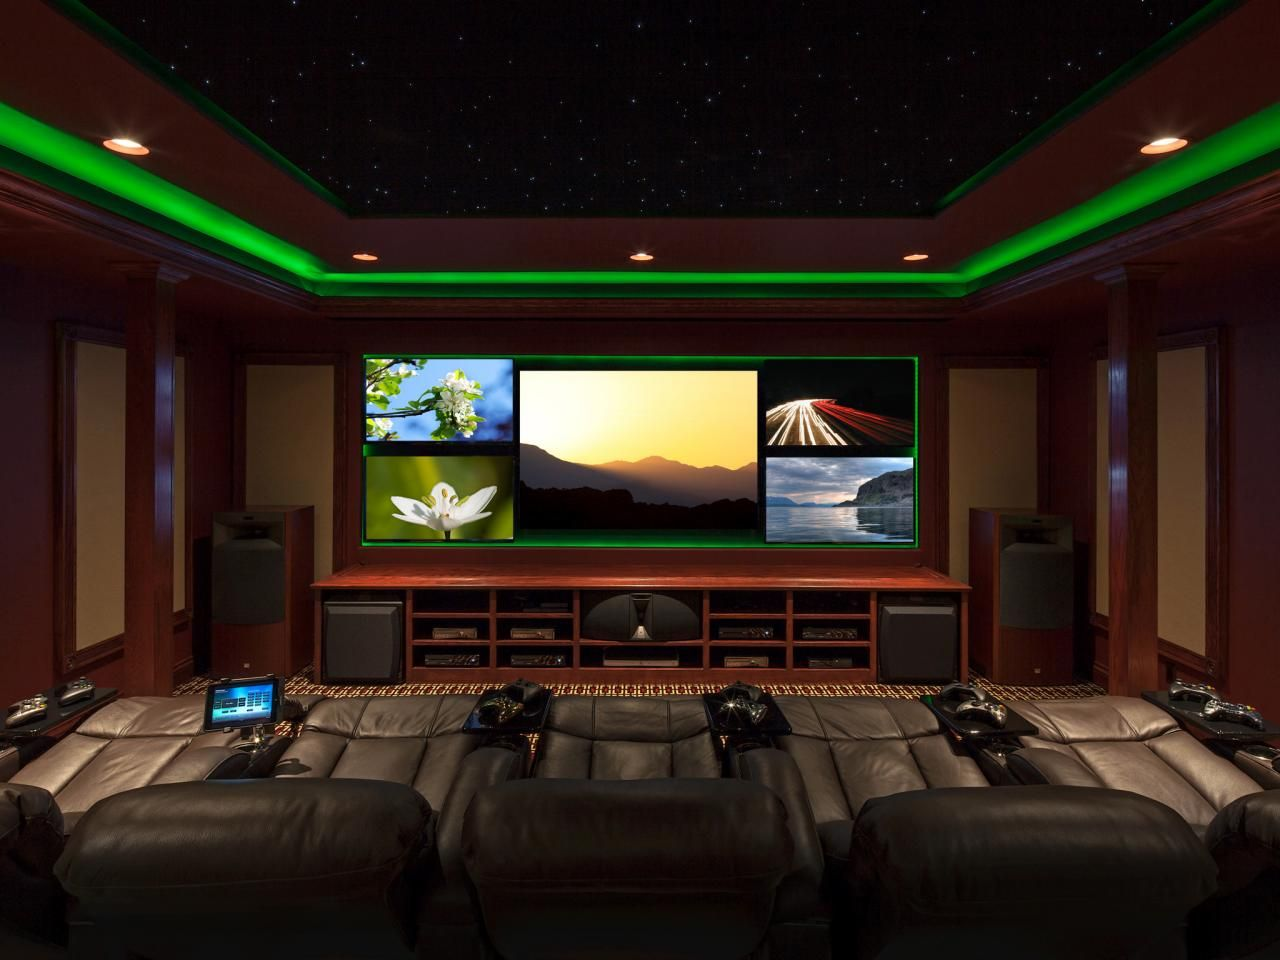 47 epic video game room decoration ideas for 2017 gameroom lighting s